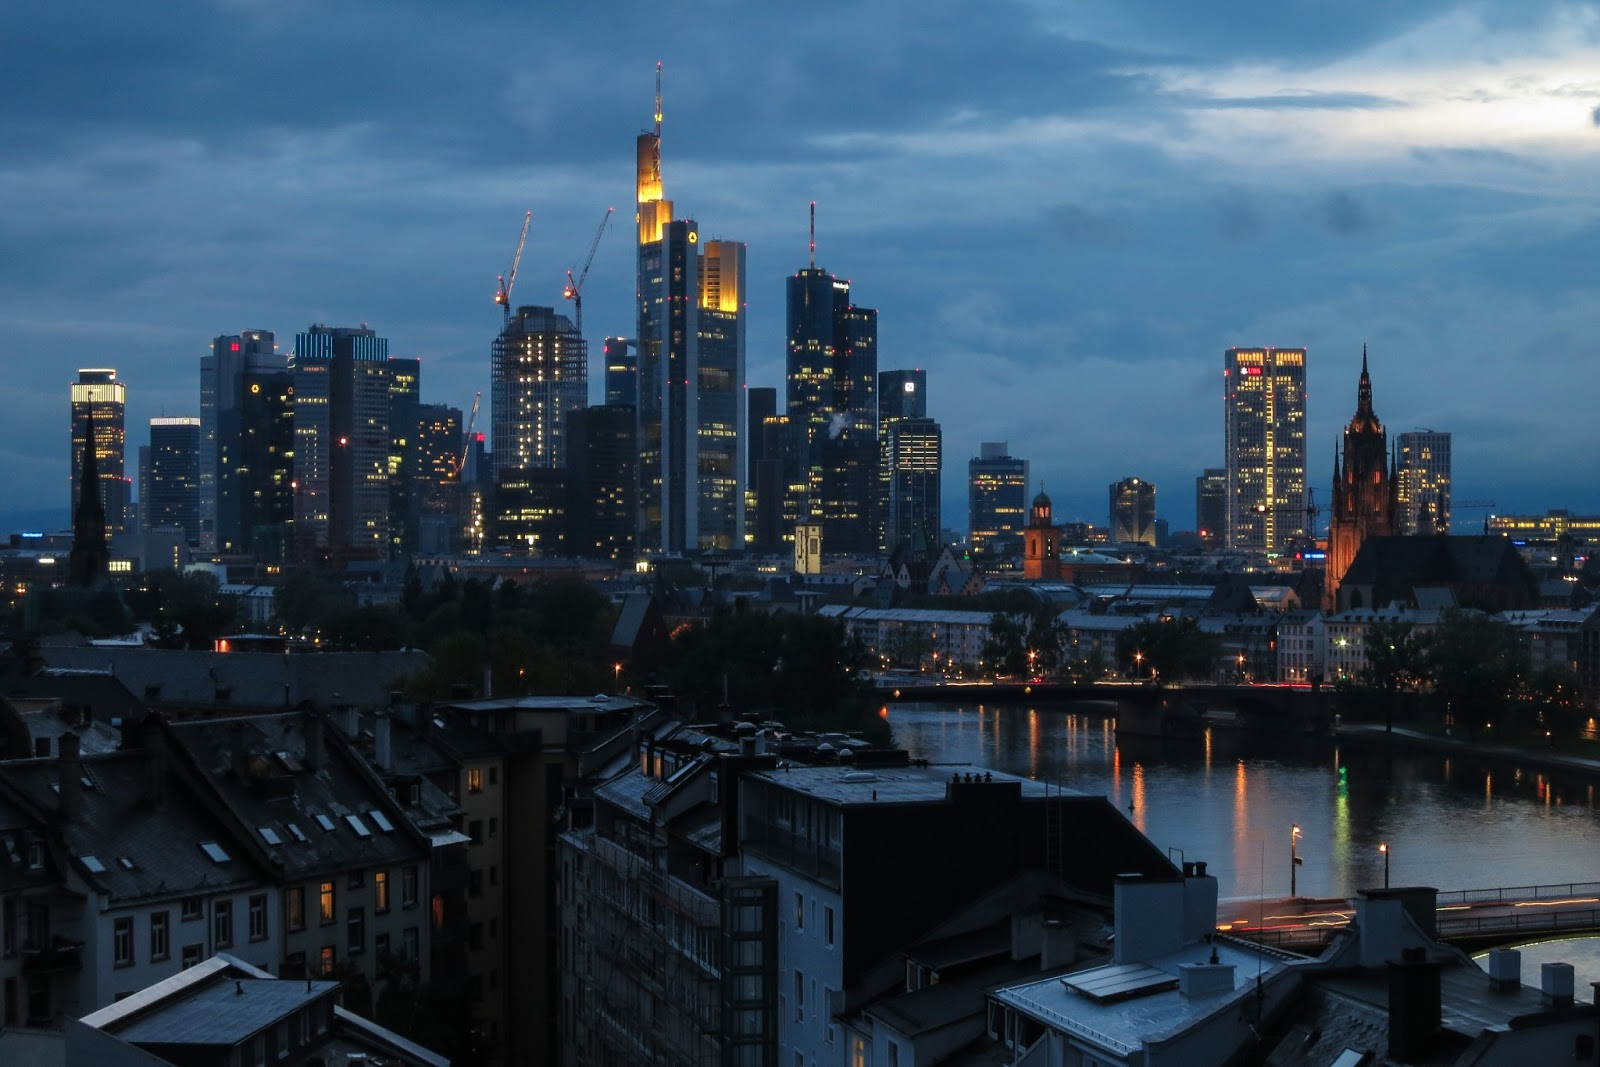 Frankfurt cloudy evening